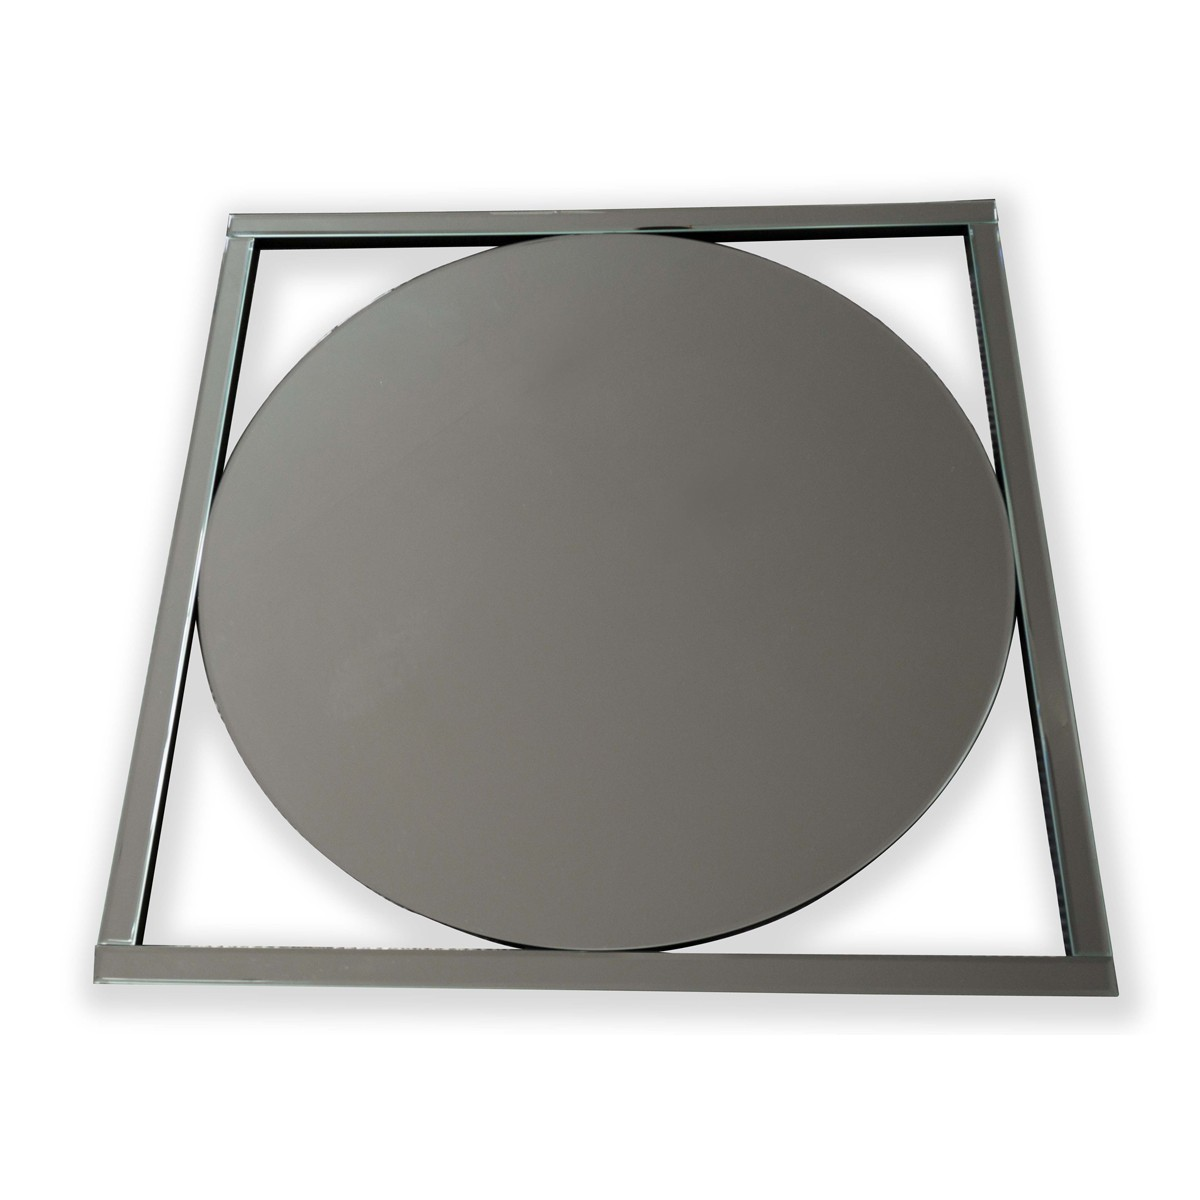 Miles - Circular Mirror in a Square Mirrored Frame